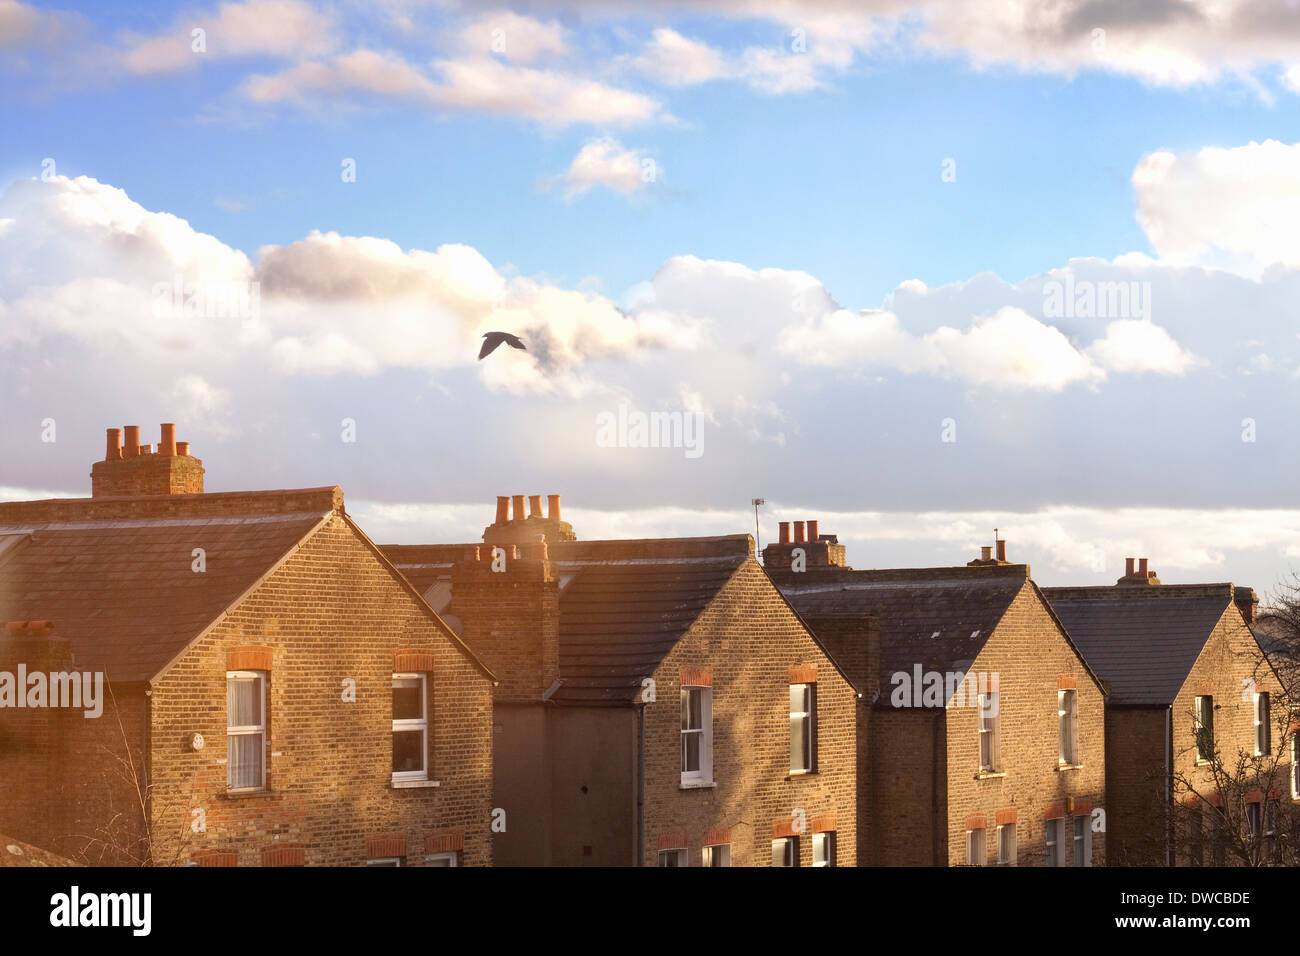 A row of terraced house rooftops Stock Photo